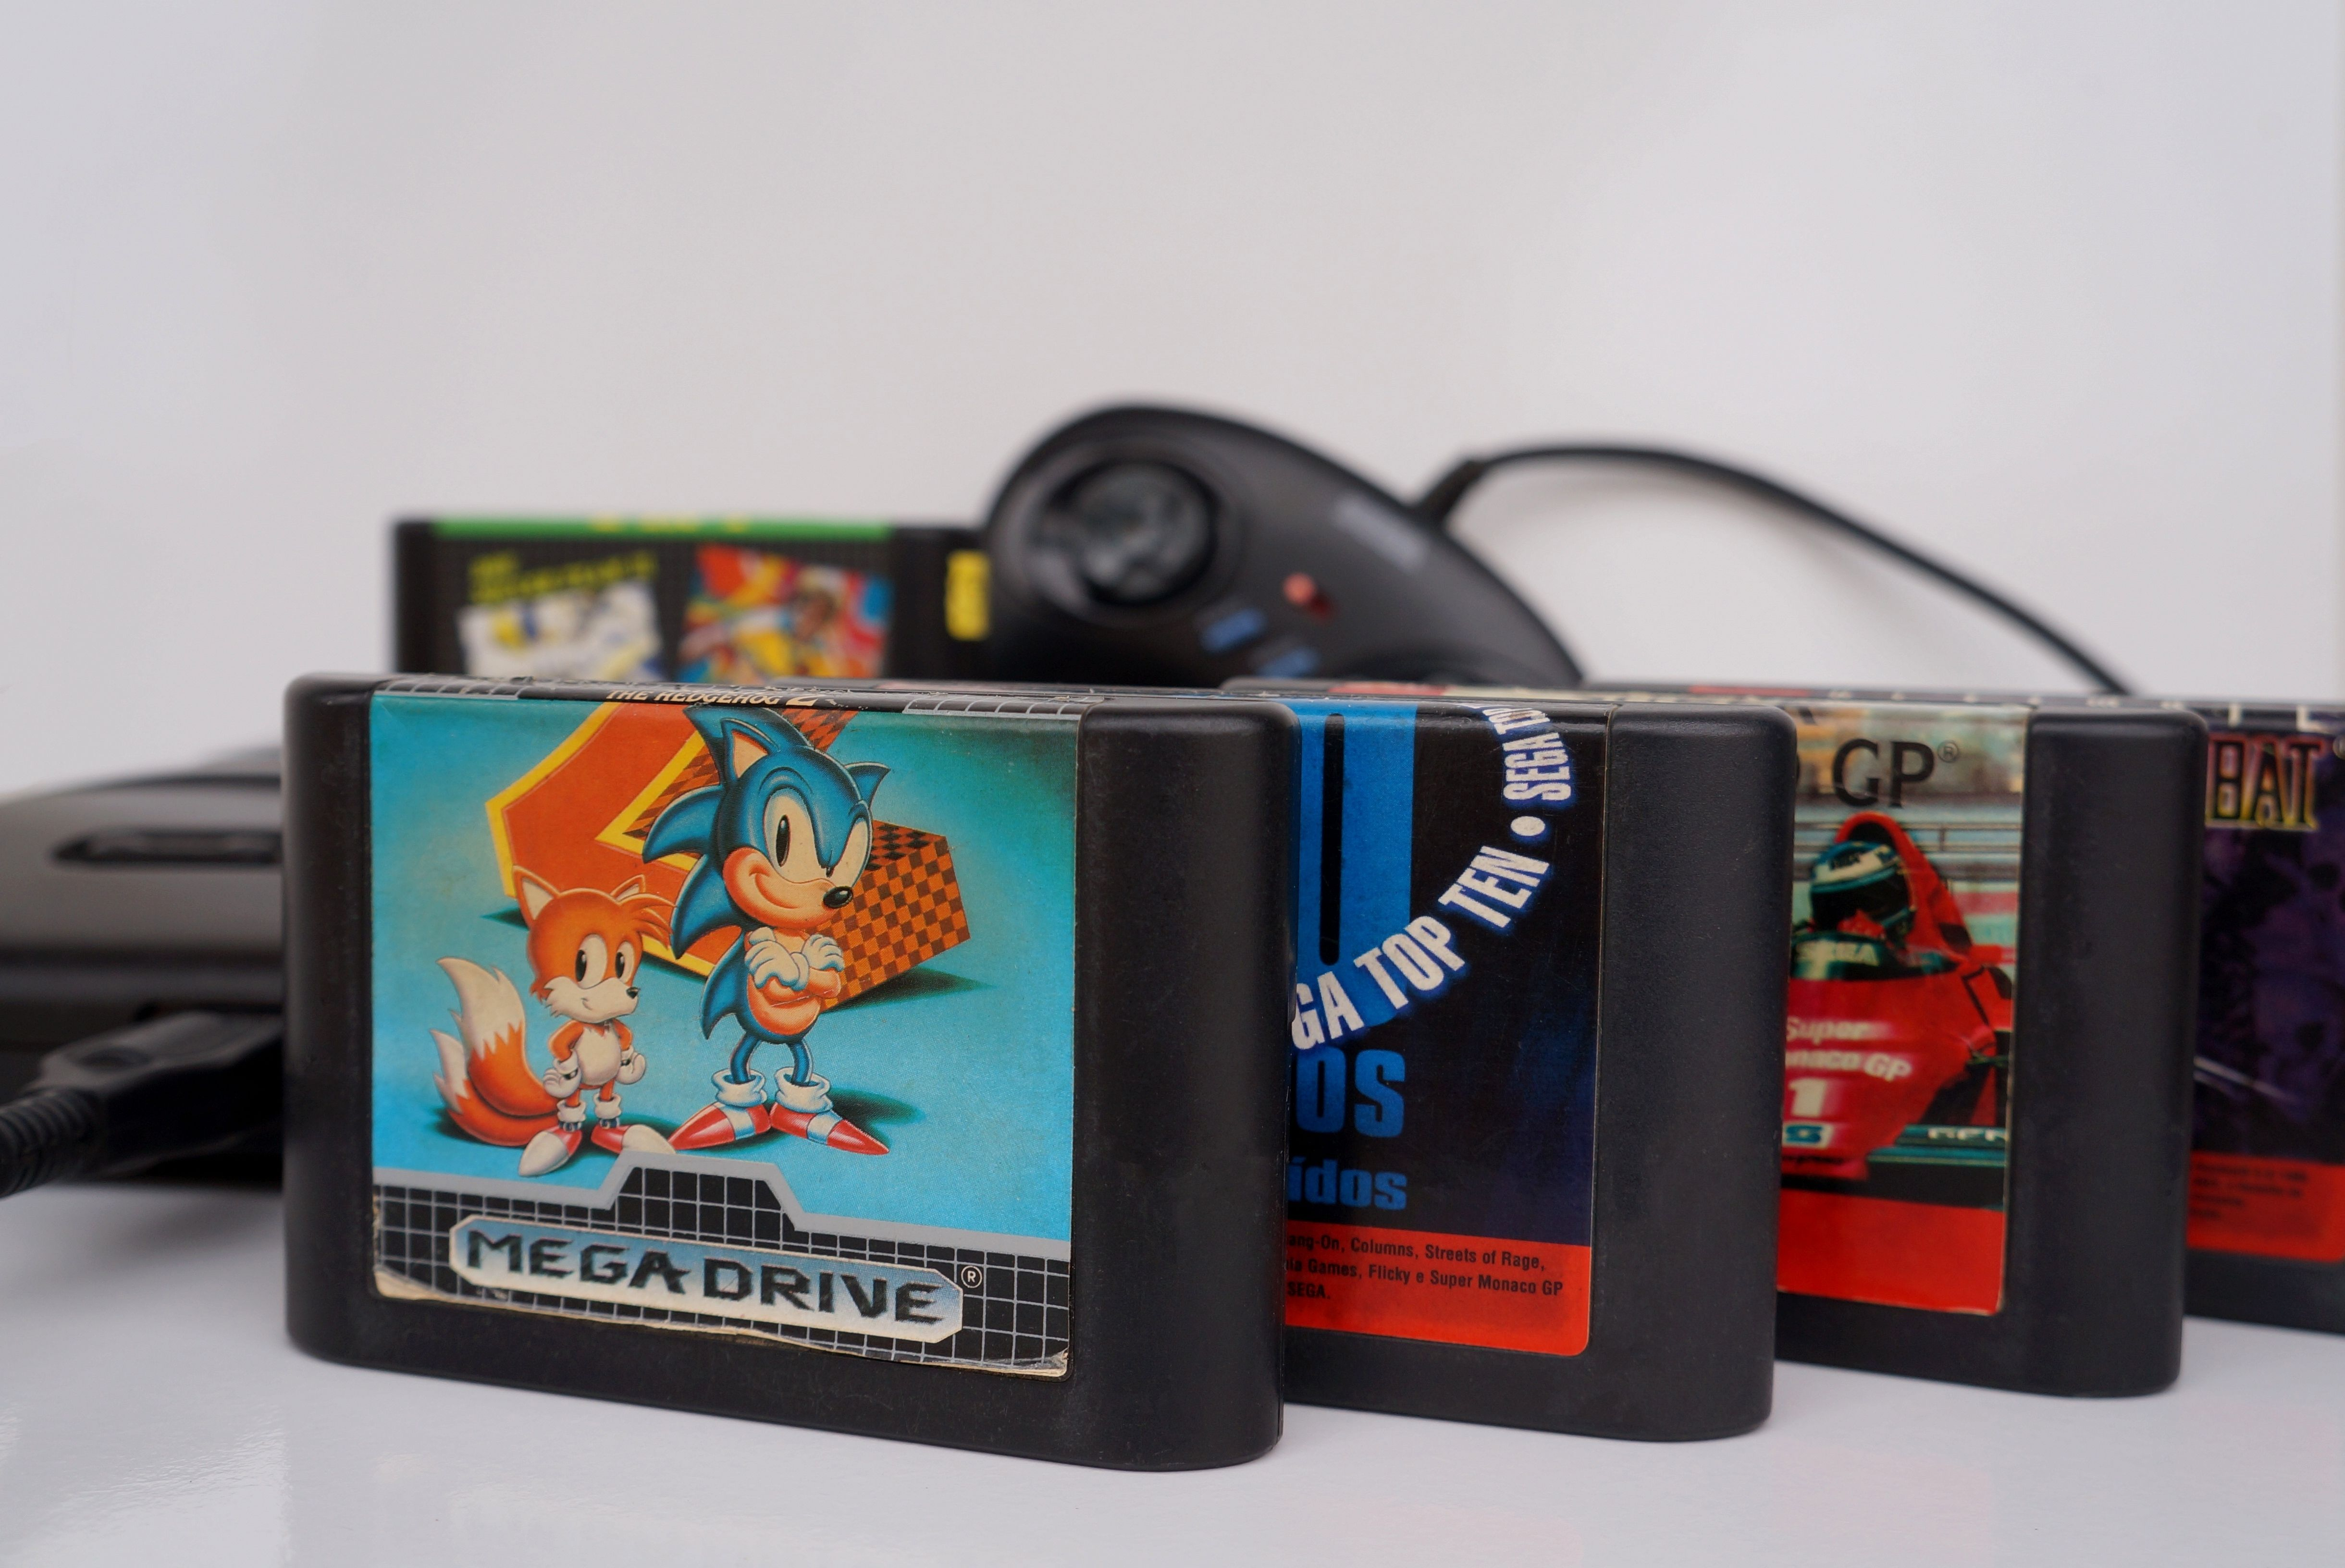 Your old Sonic the Hedgehog games could be worth hundreds